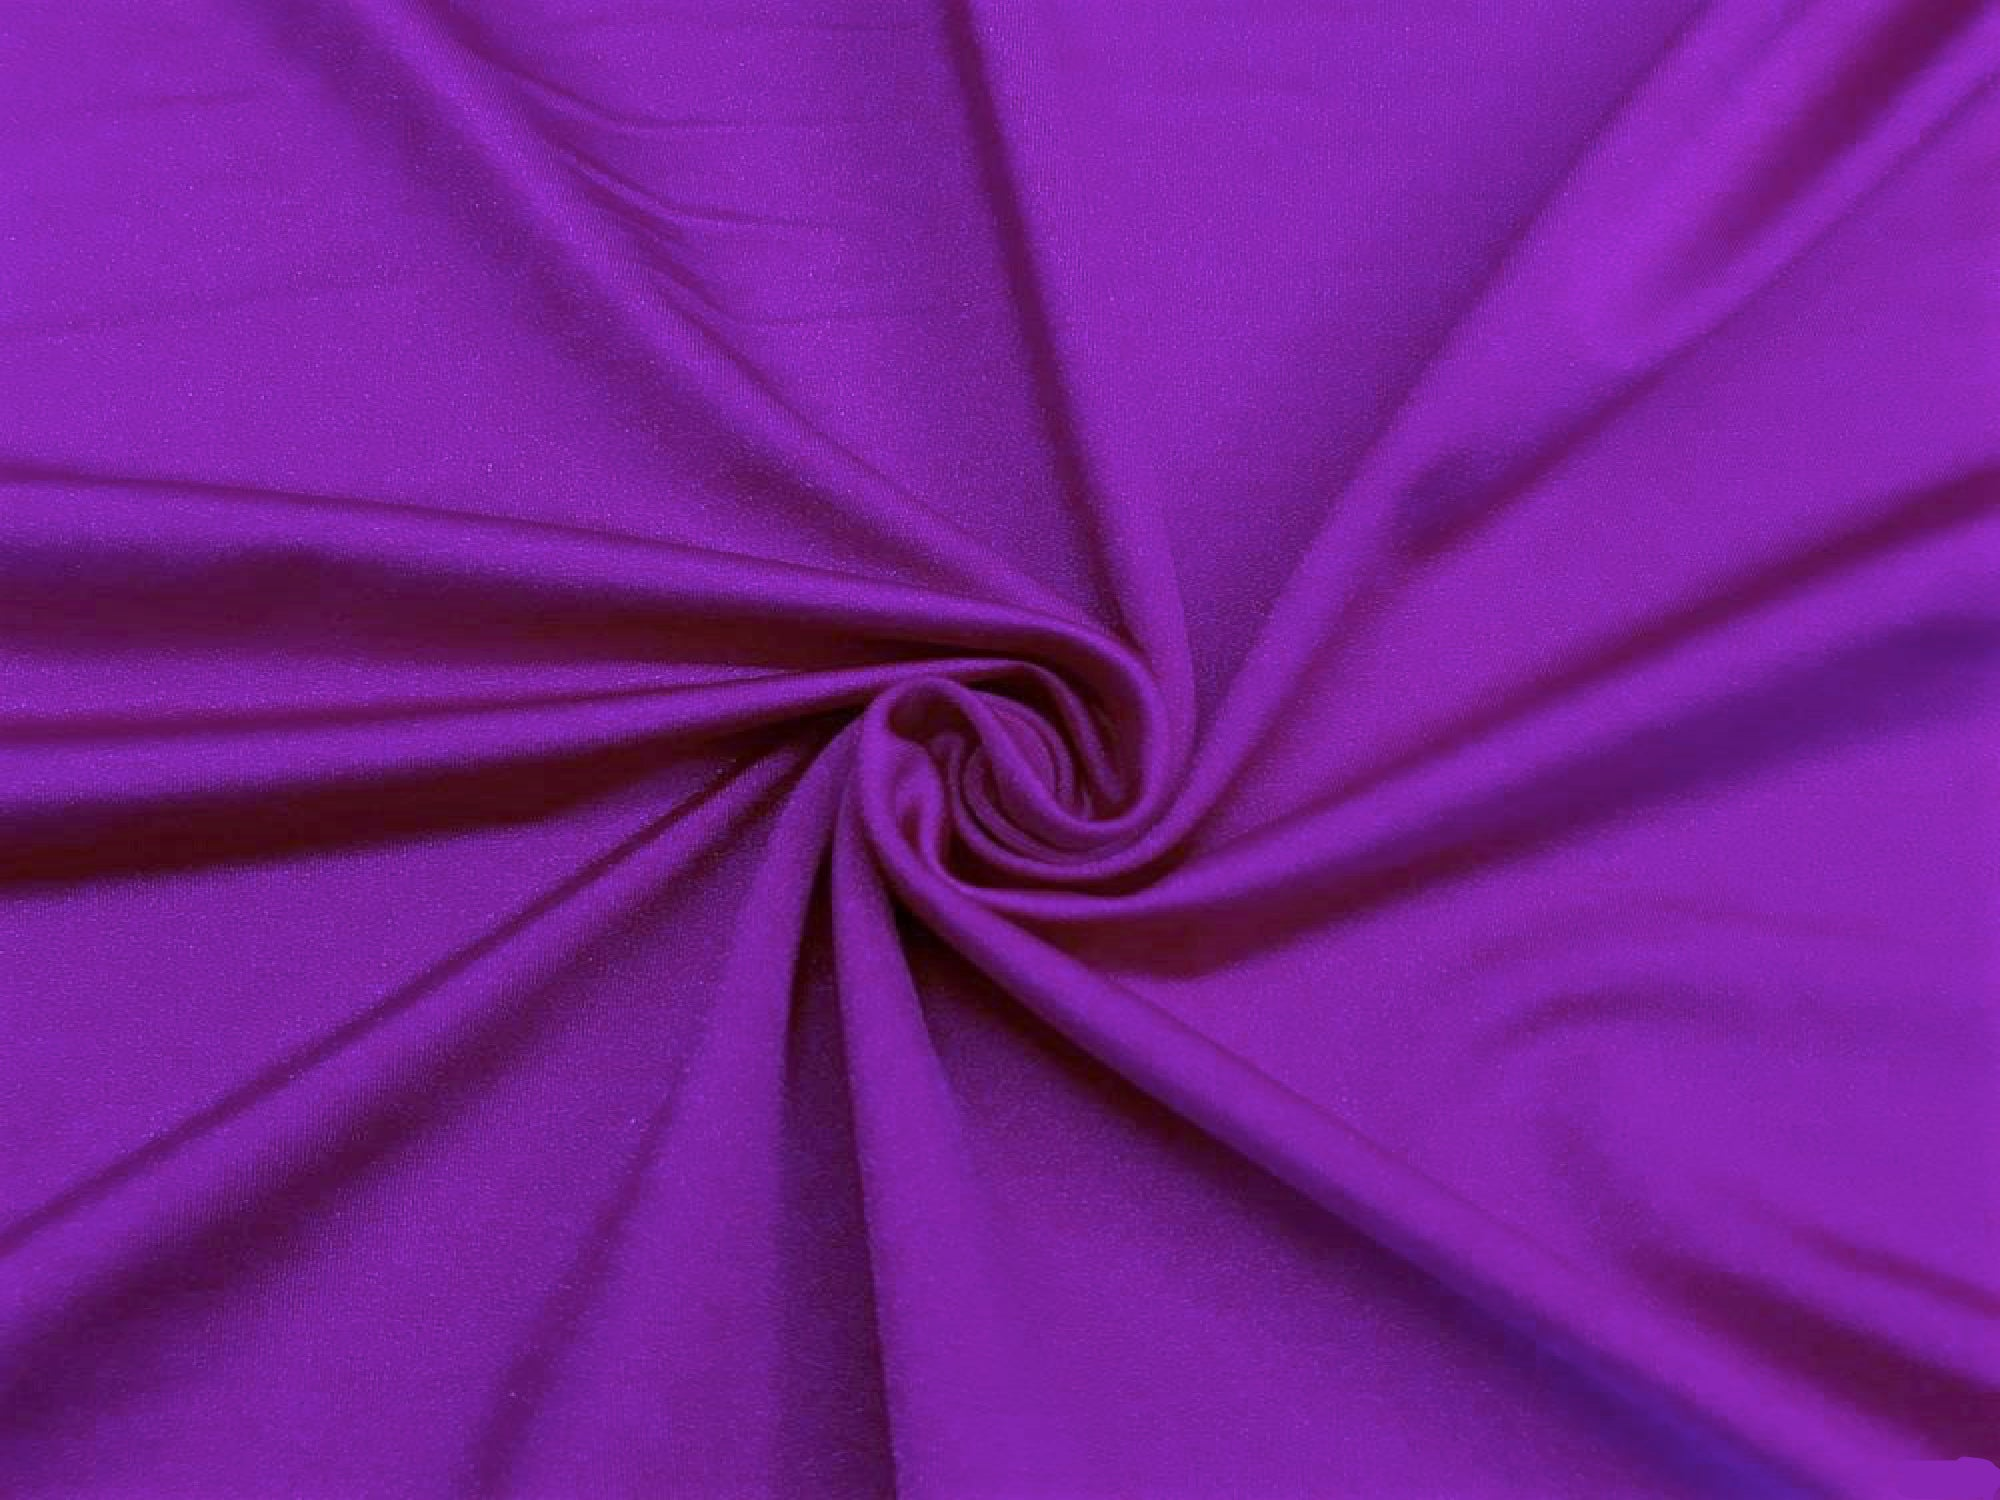 LITE L'AMOUR DRAPE - PURPLE